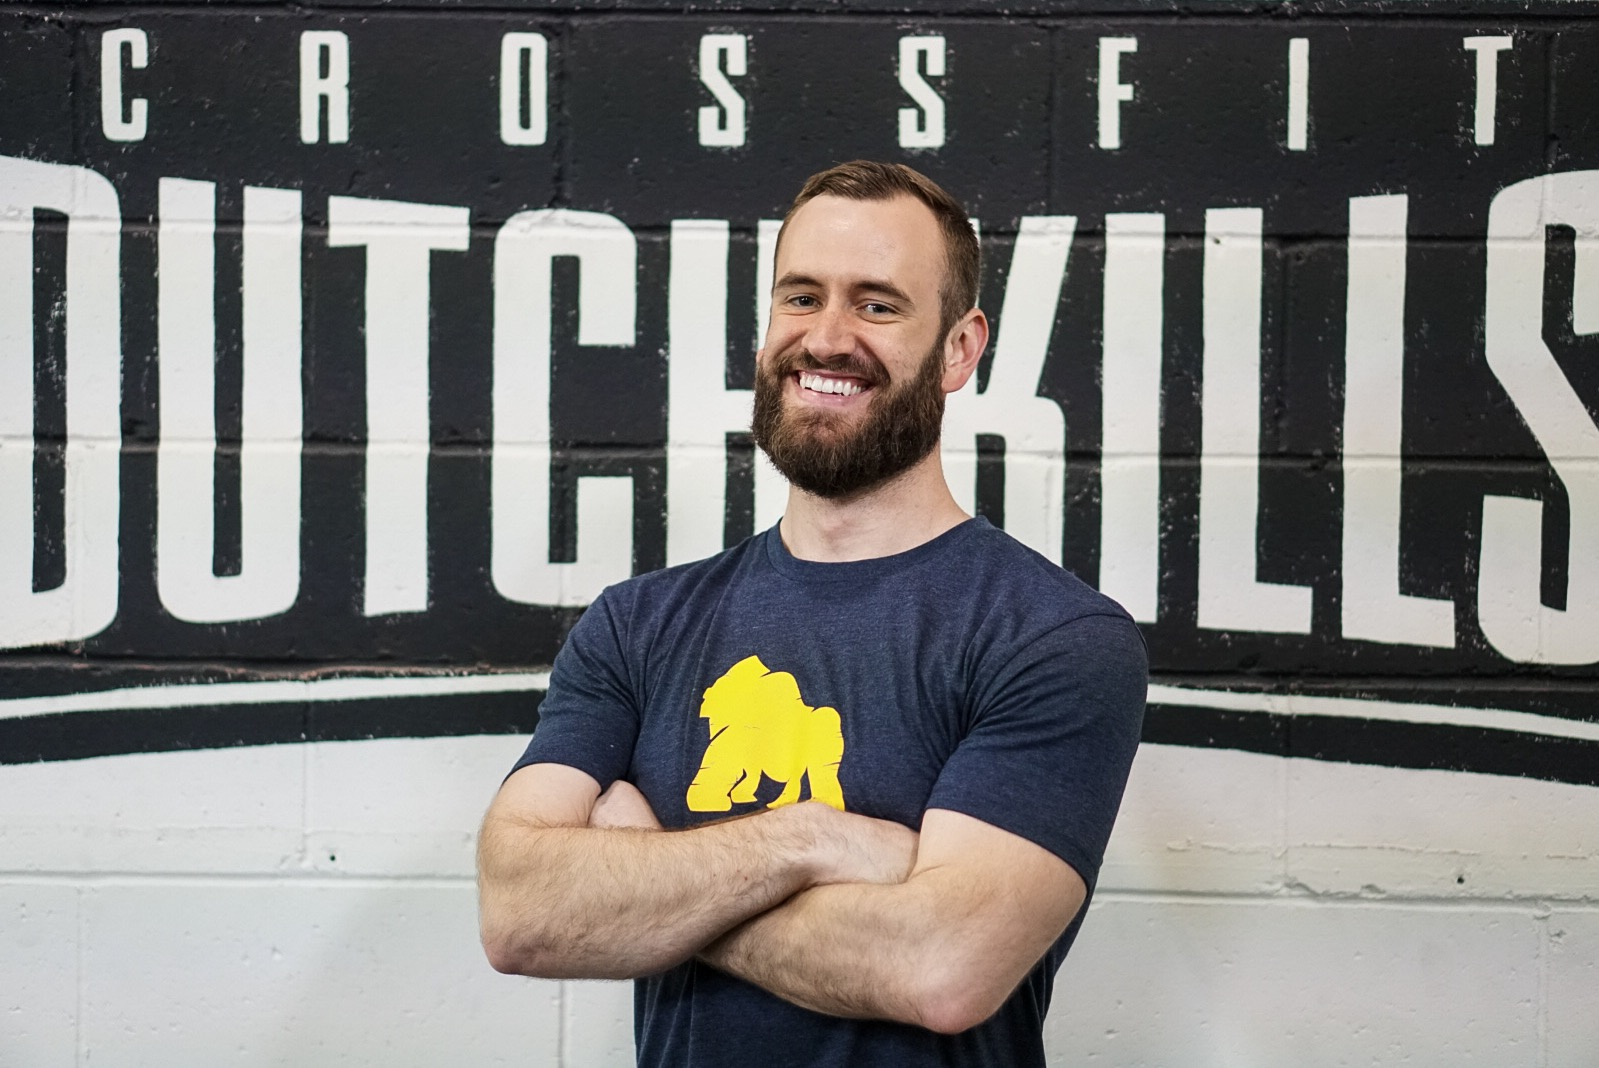 EVIN ROESLE   Hometown: Panama City, Florida   CrossFit Level 1  CrossFitting since 2013 Favorite Movement: Snatch Least Favorite Movement: Sumo Deadlift High Pull